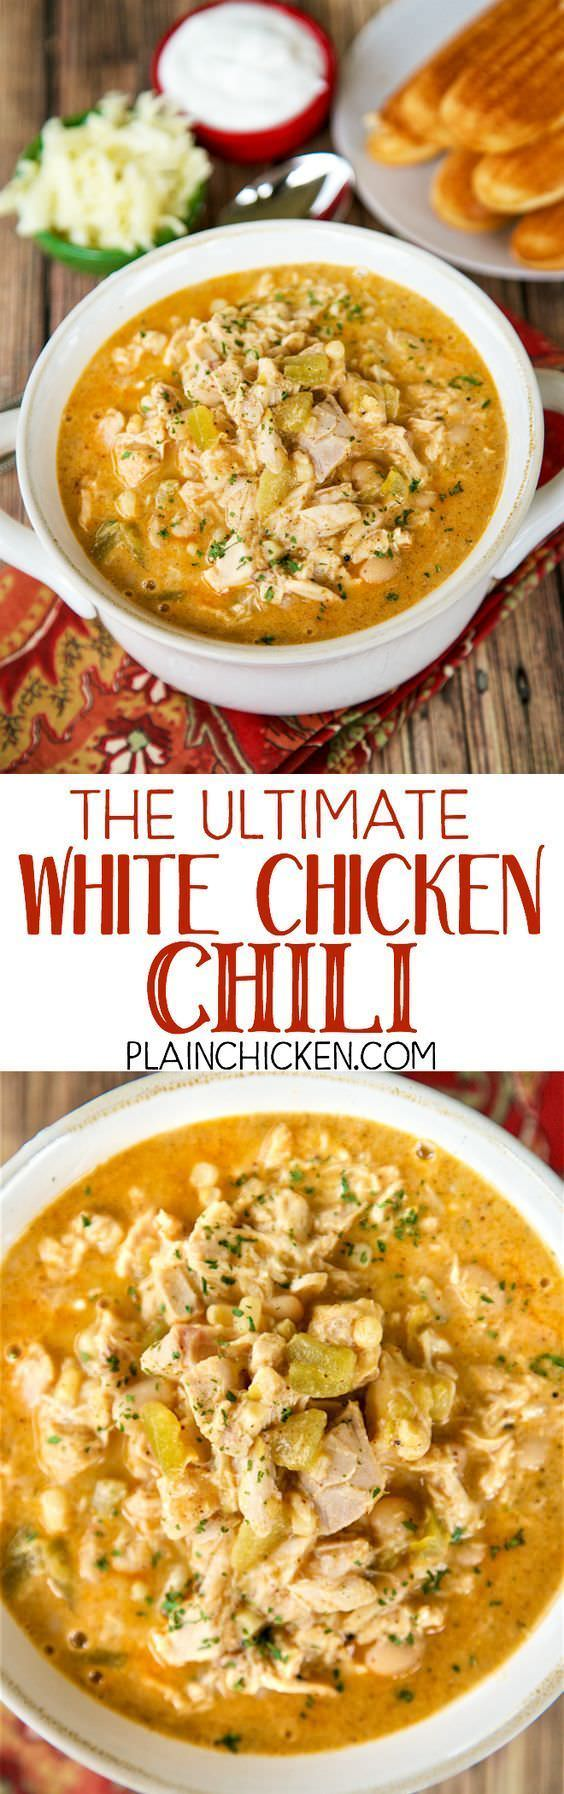 The Ultimate White Chicken Chili - the BEST of the BEST White Chicken Chilis! SO good and ready to eat in under 20 minutes!